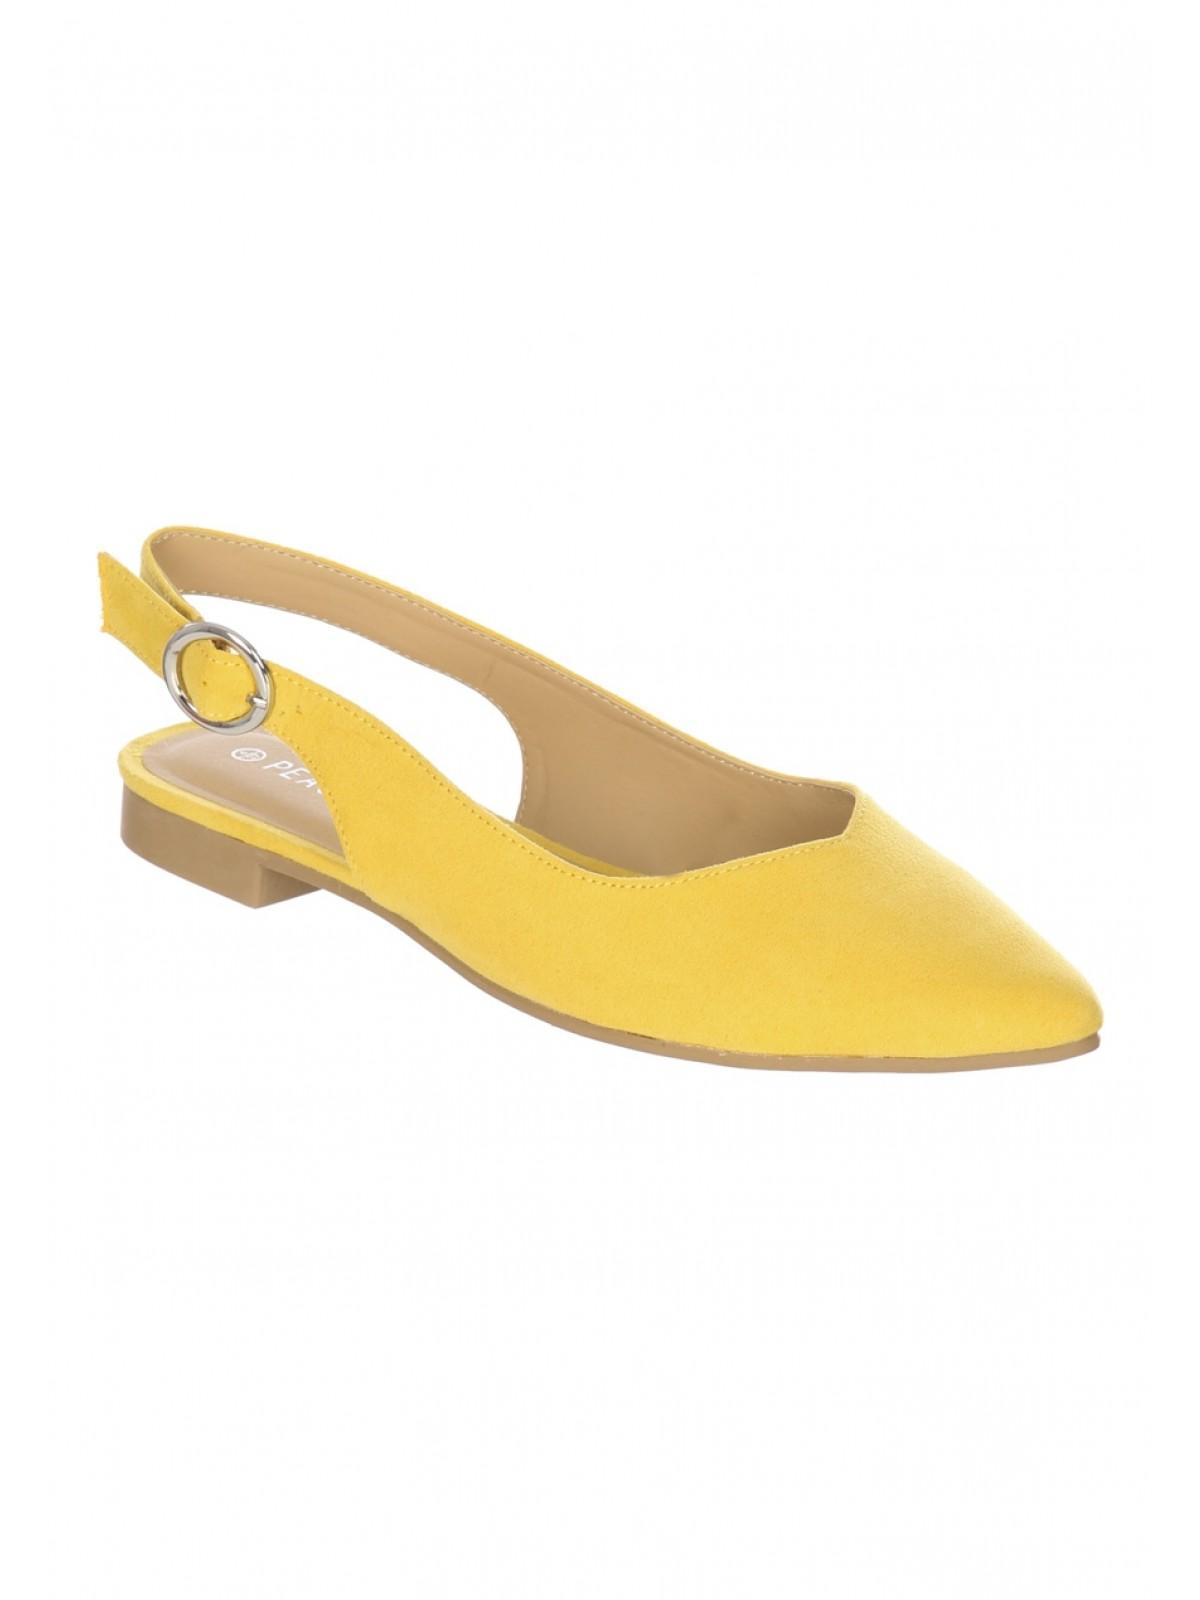 e73a4019fe55a Home; Womens Mustard Slingback Flats. Back. PreviousNext